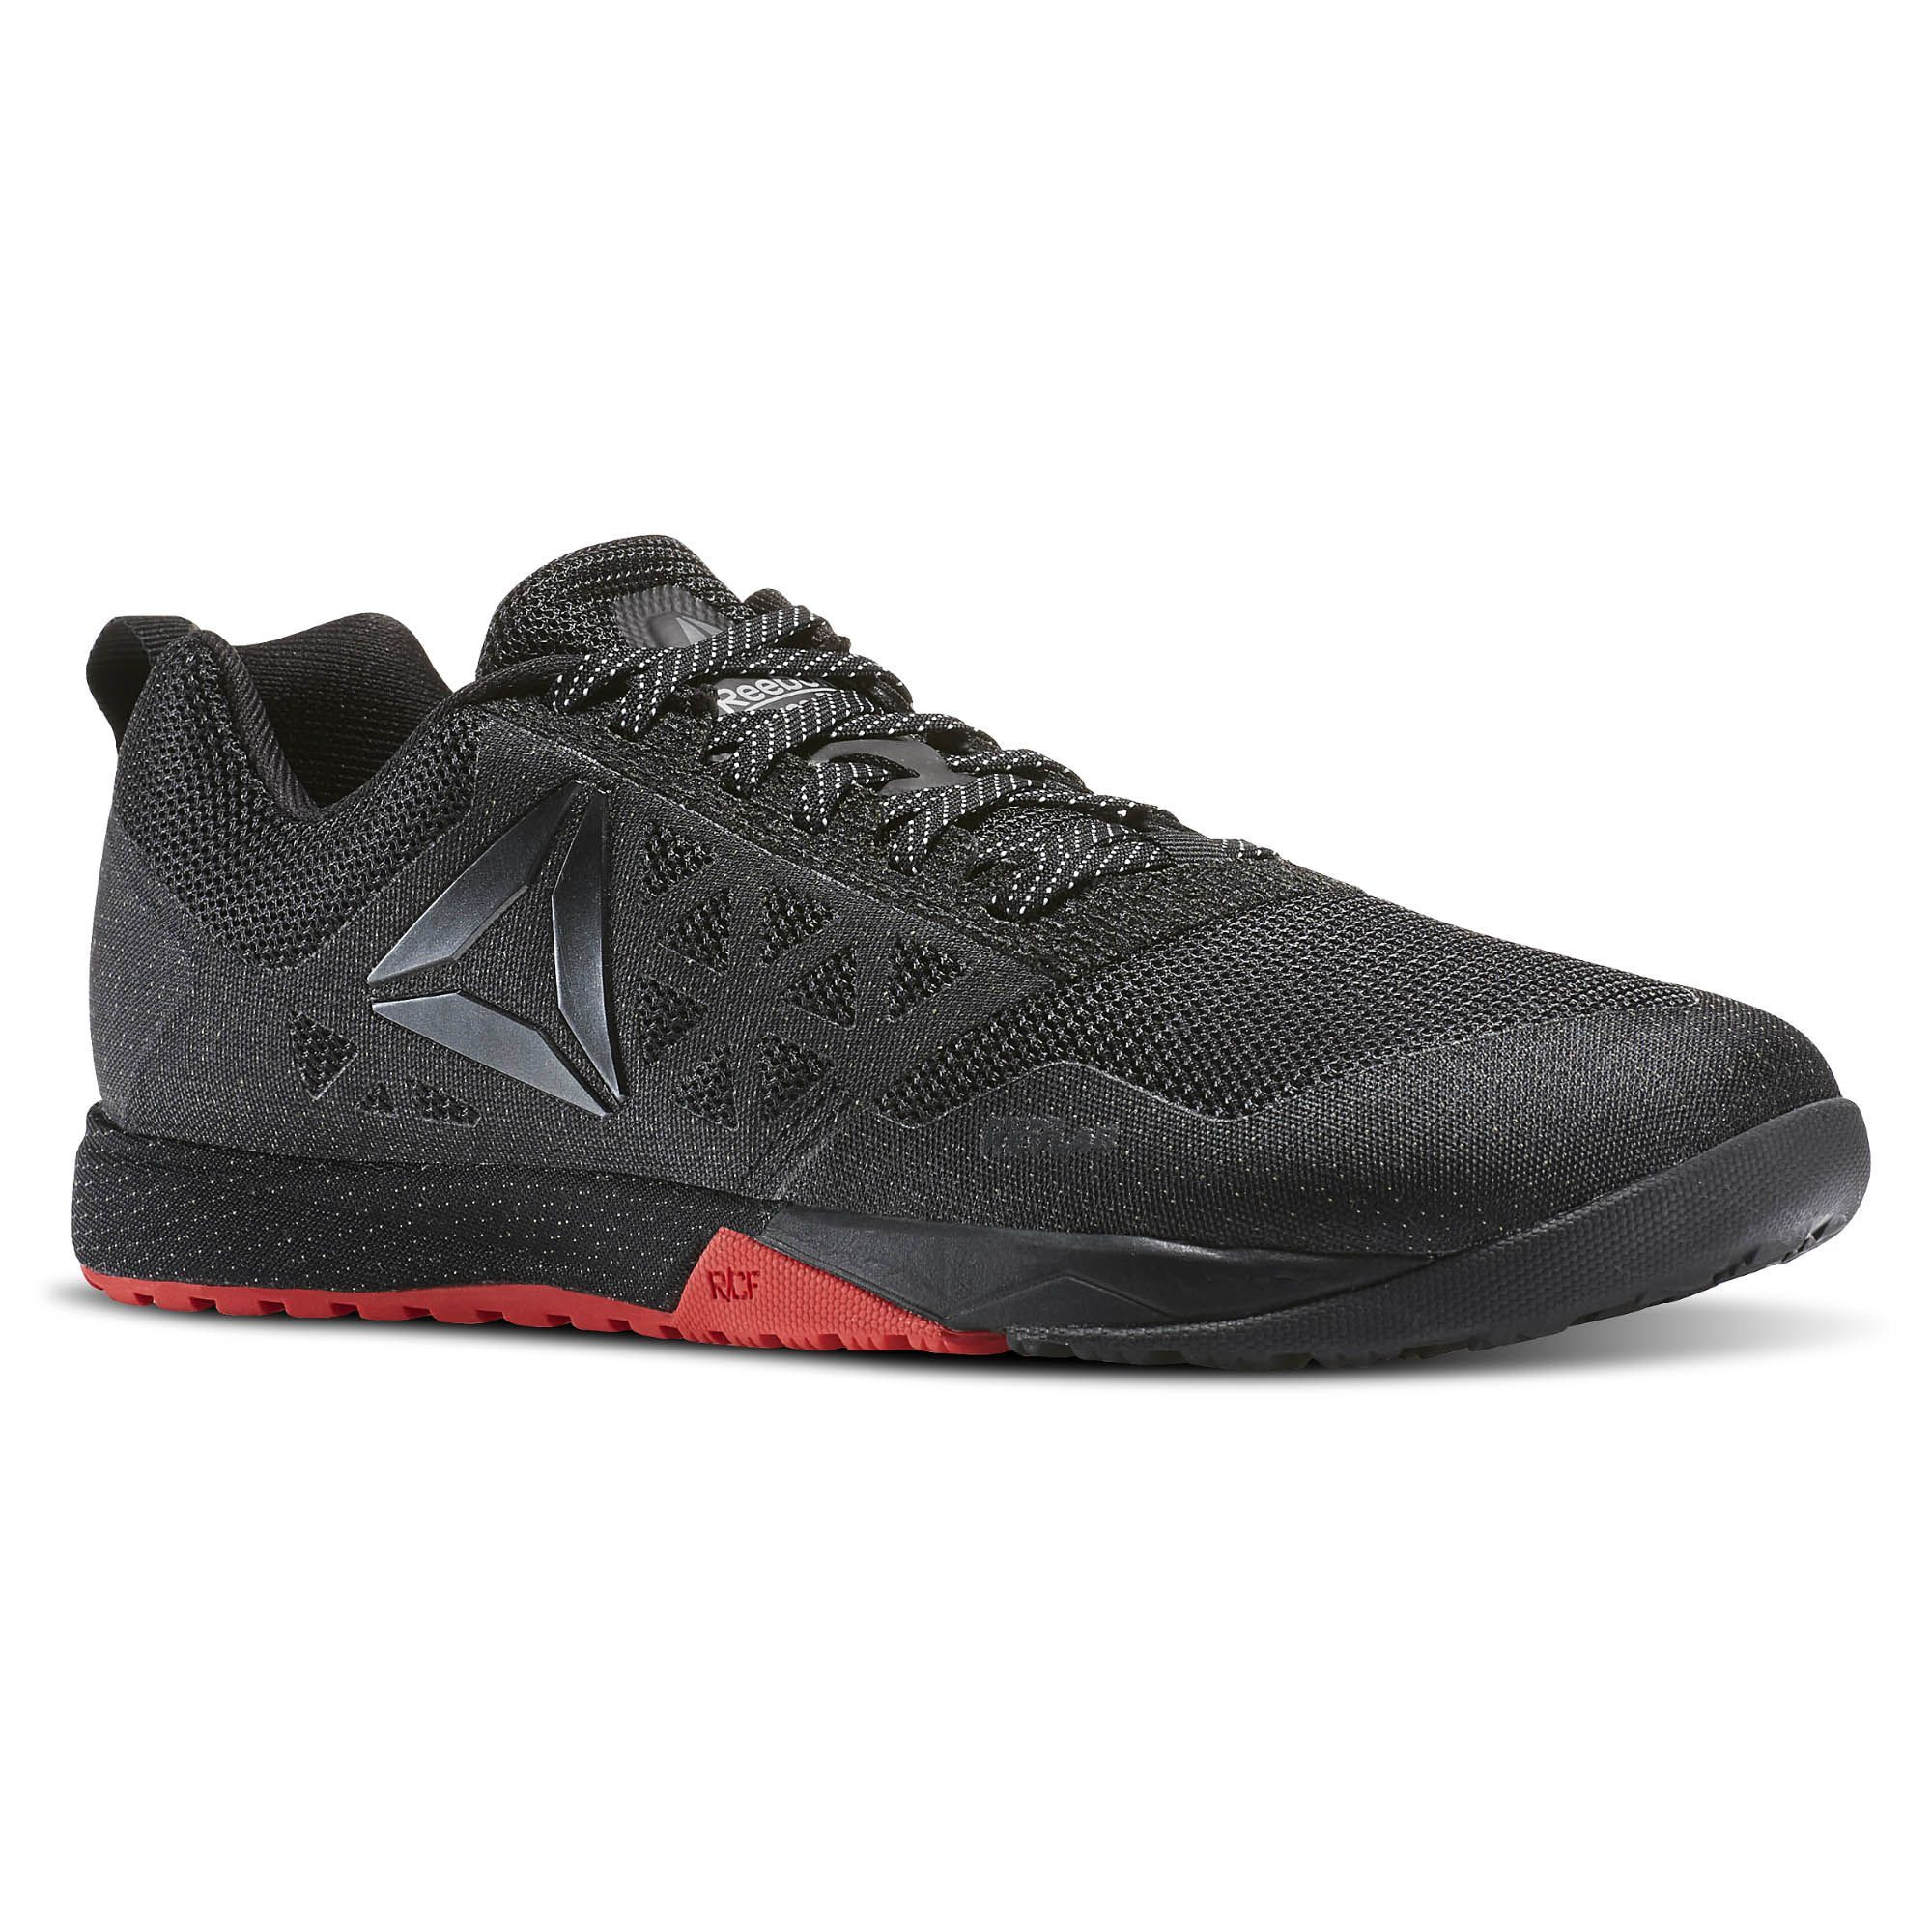 Black CrossFit Trainers and Clothing